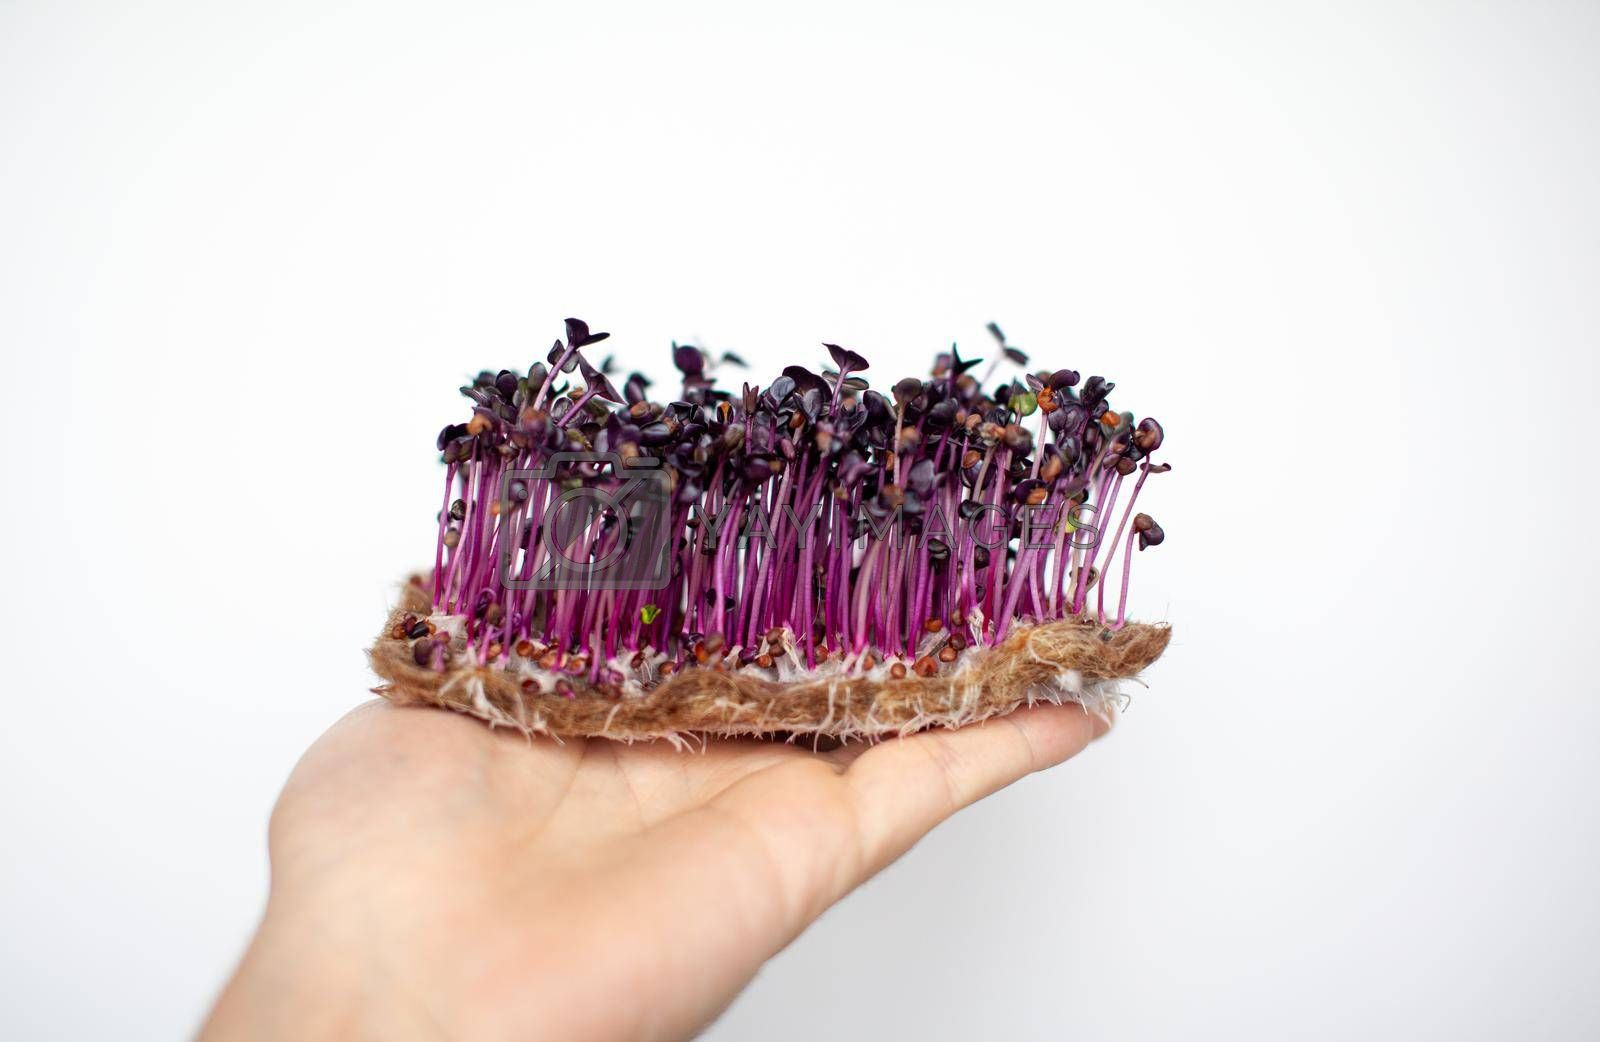 Purple micro-green radish sprouts in your hand. Growing radish or basil sprouts in close-up at home. The concept of vegan and healthy food. Sprouted seeds, micro-greens